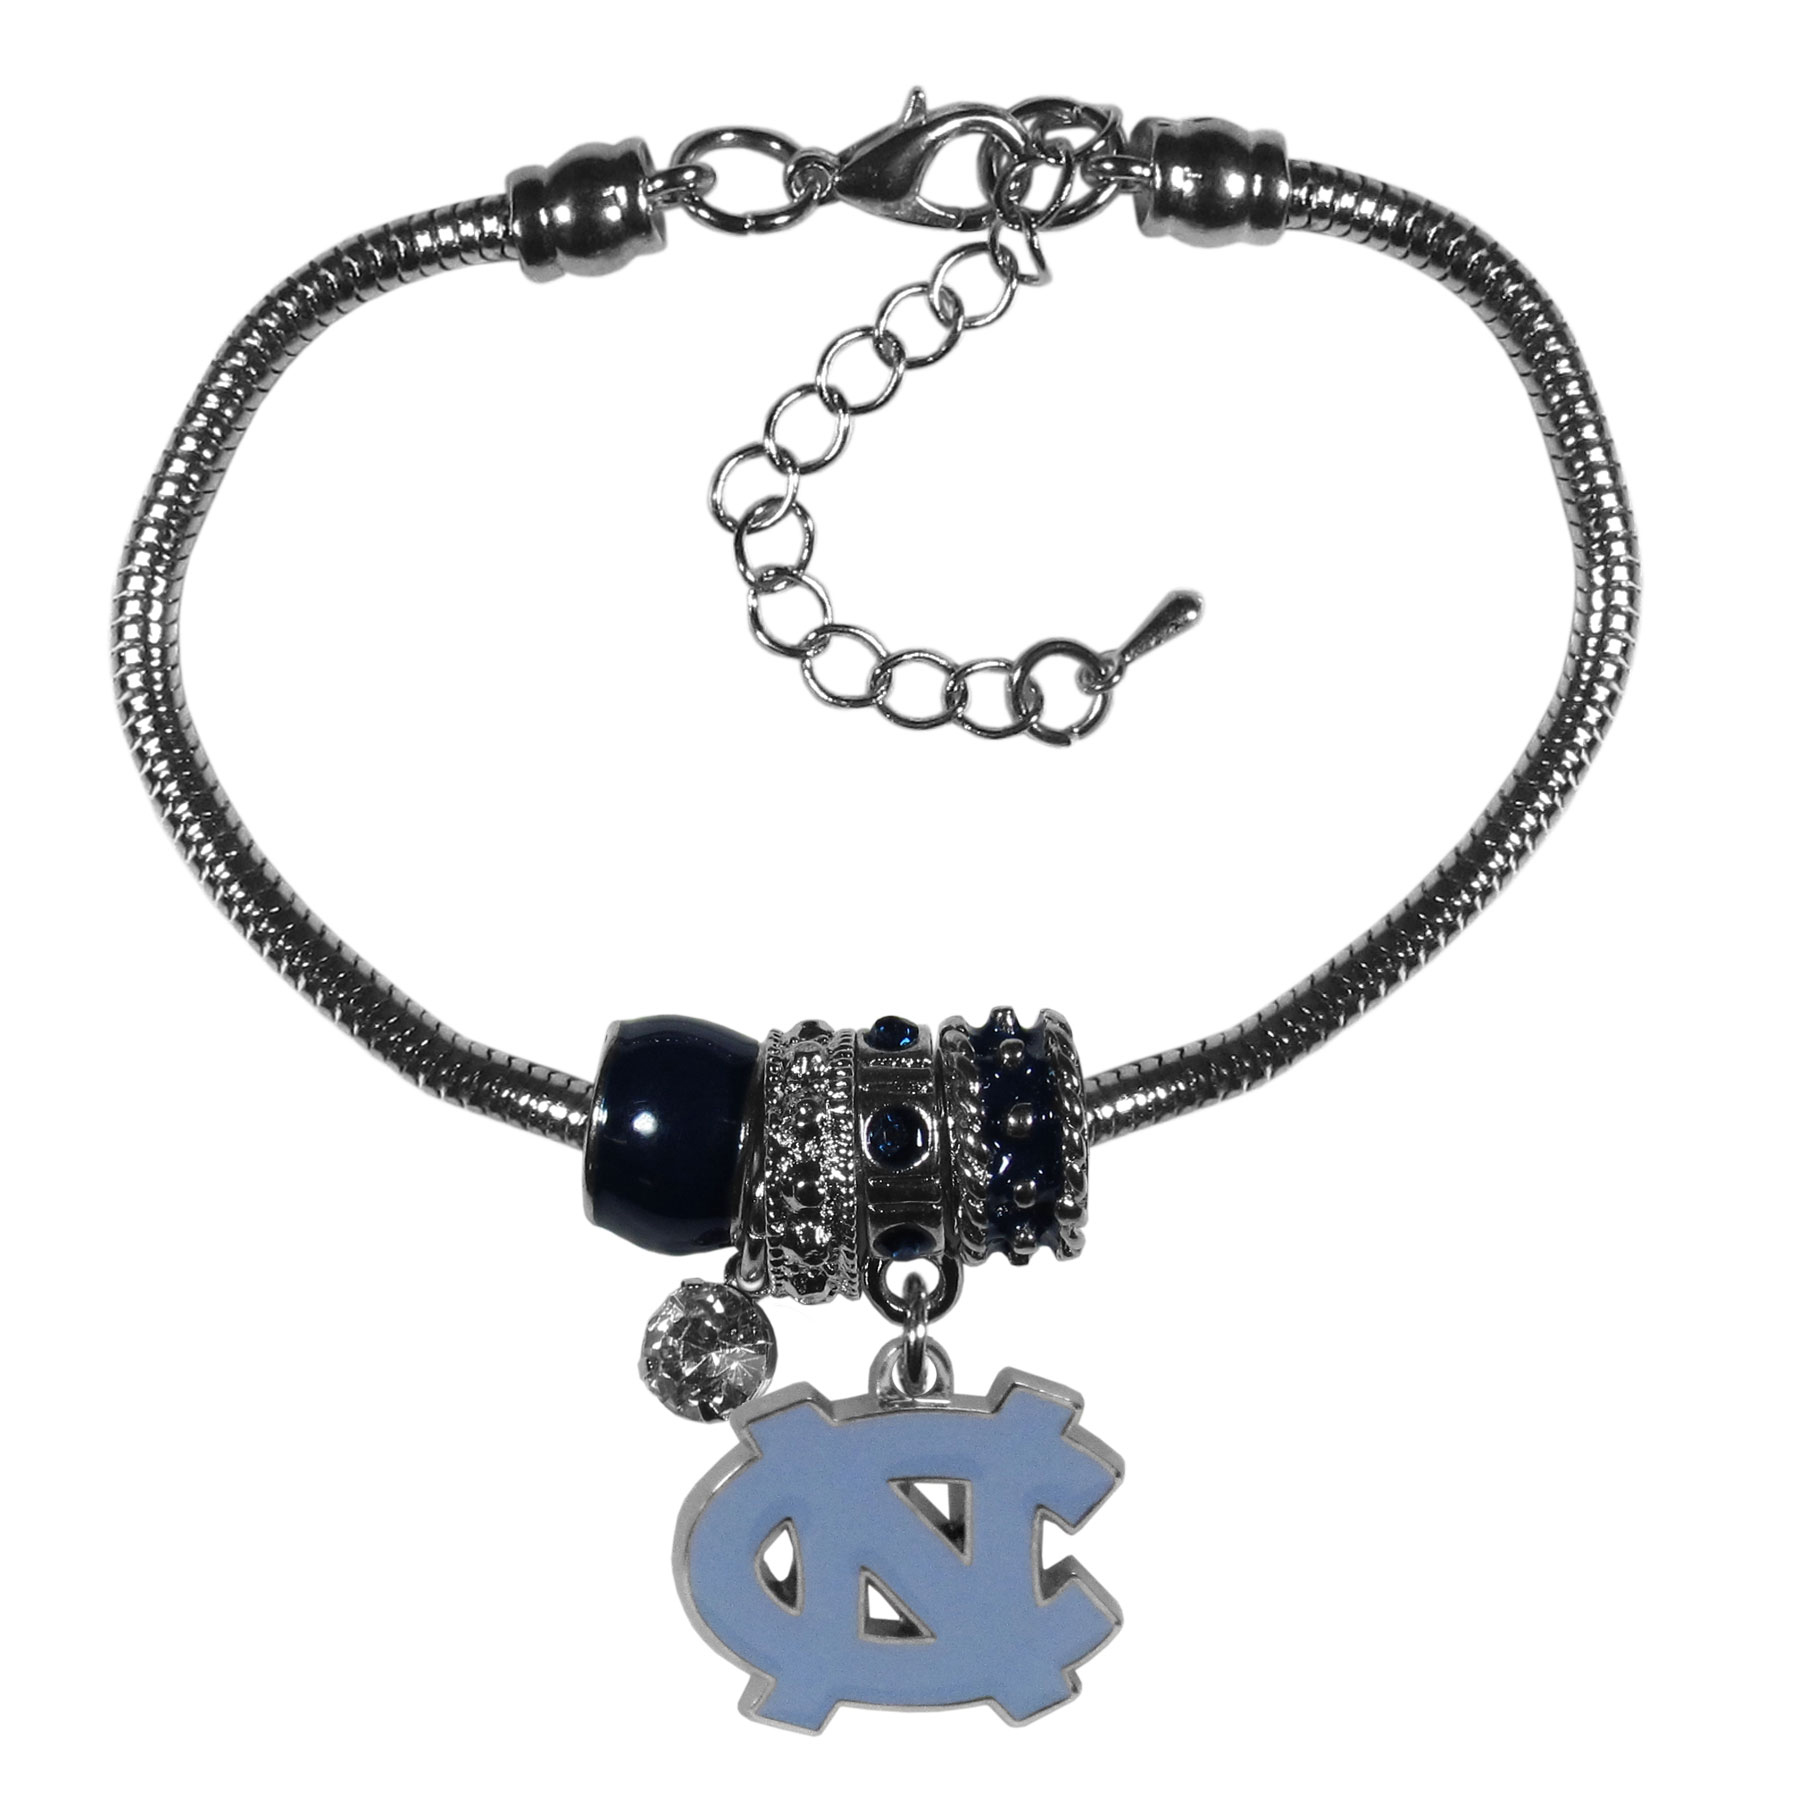 N. Carolina Tar Heels Euro Bead Bracelet - We have combined the wildly popular Euro style beads with your favorite team to create our  N. Carolina Tar Heels bead bracelet. The 7.5 inch snake chain with 2 inch extender features 4 Euro beads with enameled team colors and rhinestone accents with a high polish, nickel free charm and rhinestone charm. Perfect way to show off your team pride.